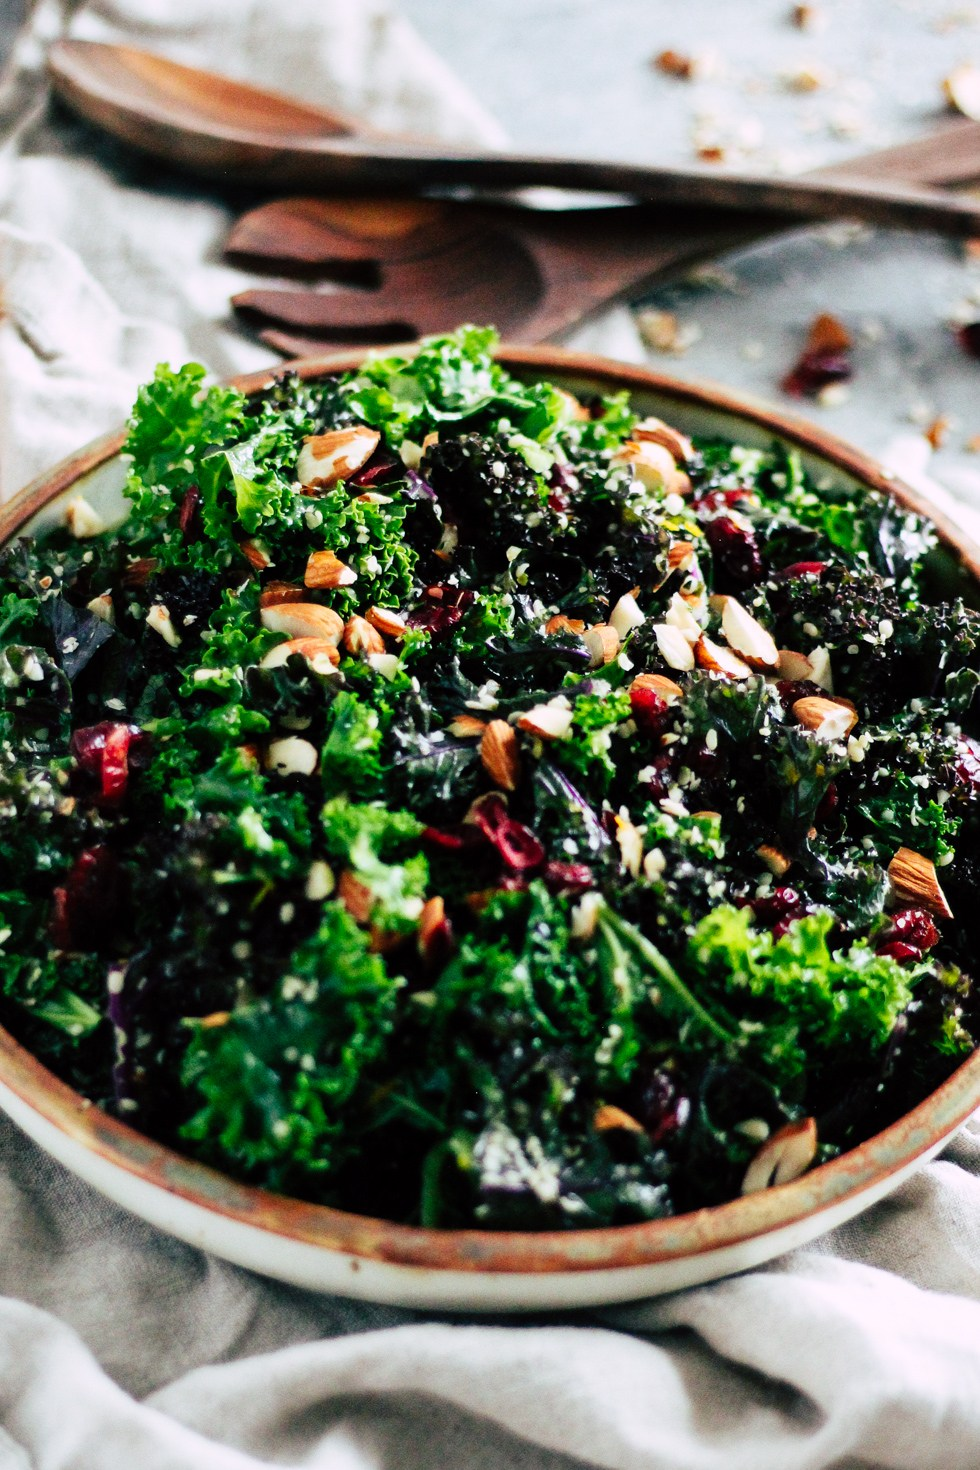 Make-Ahead Kale Salad in ceramic dish for easy college meals